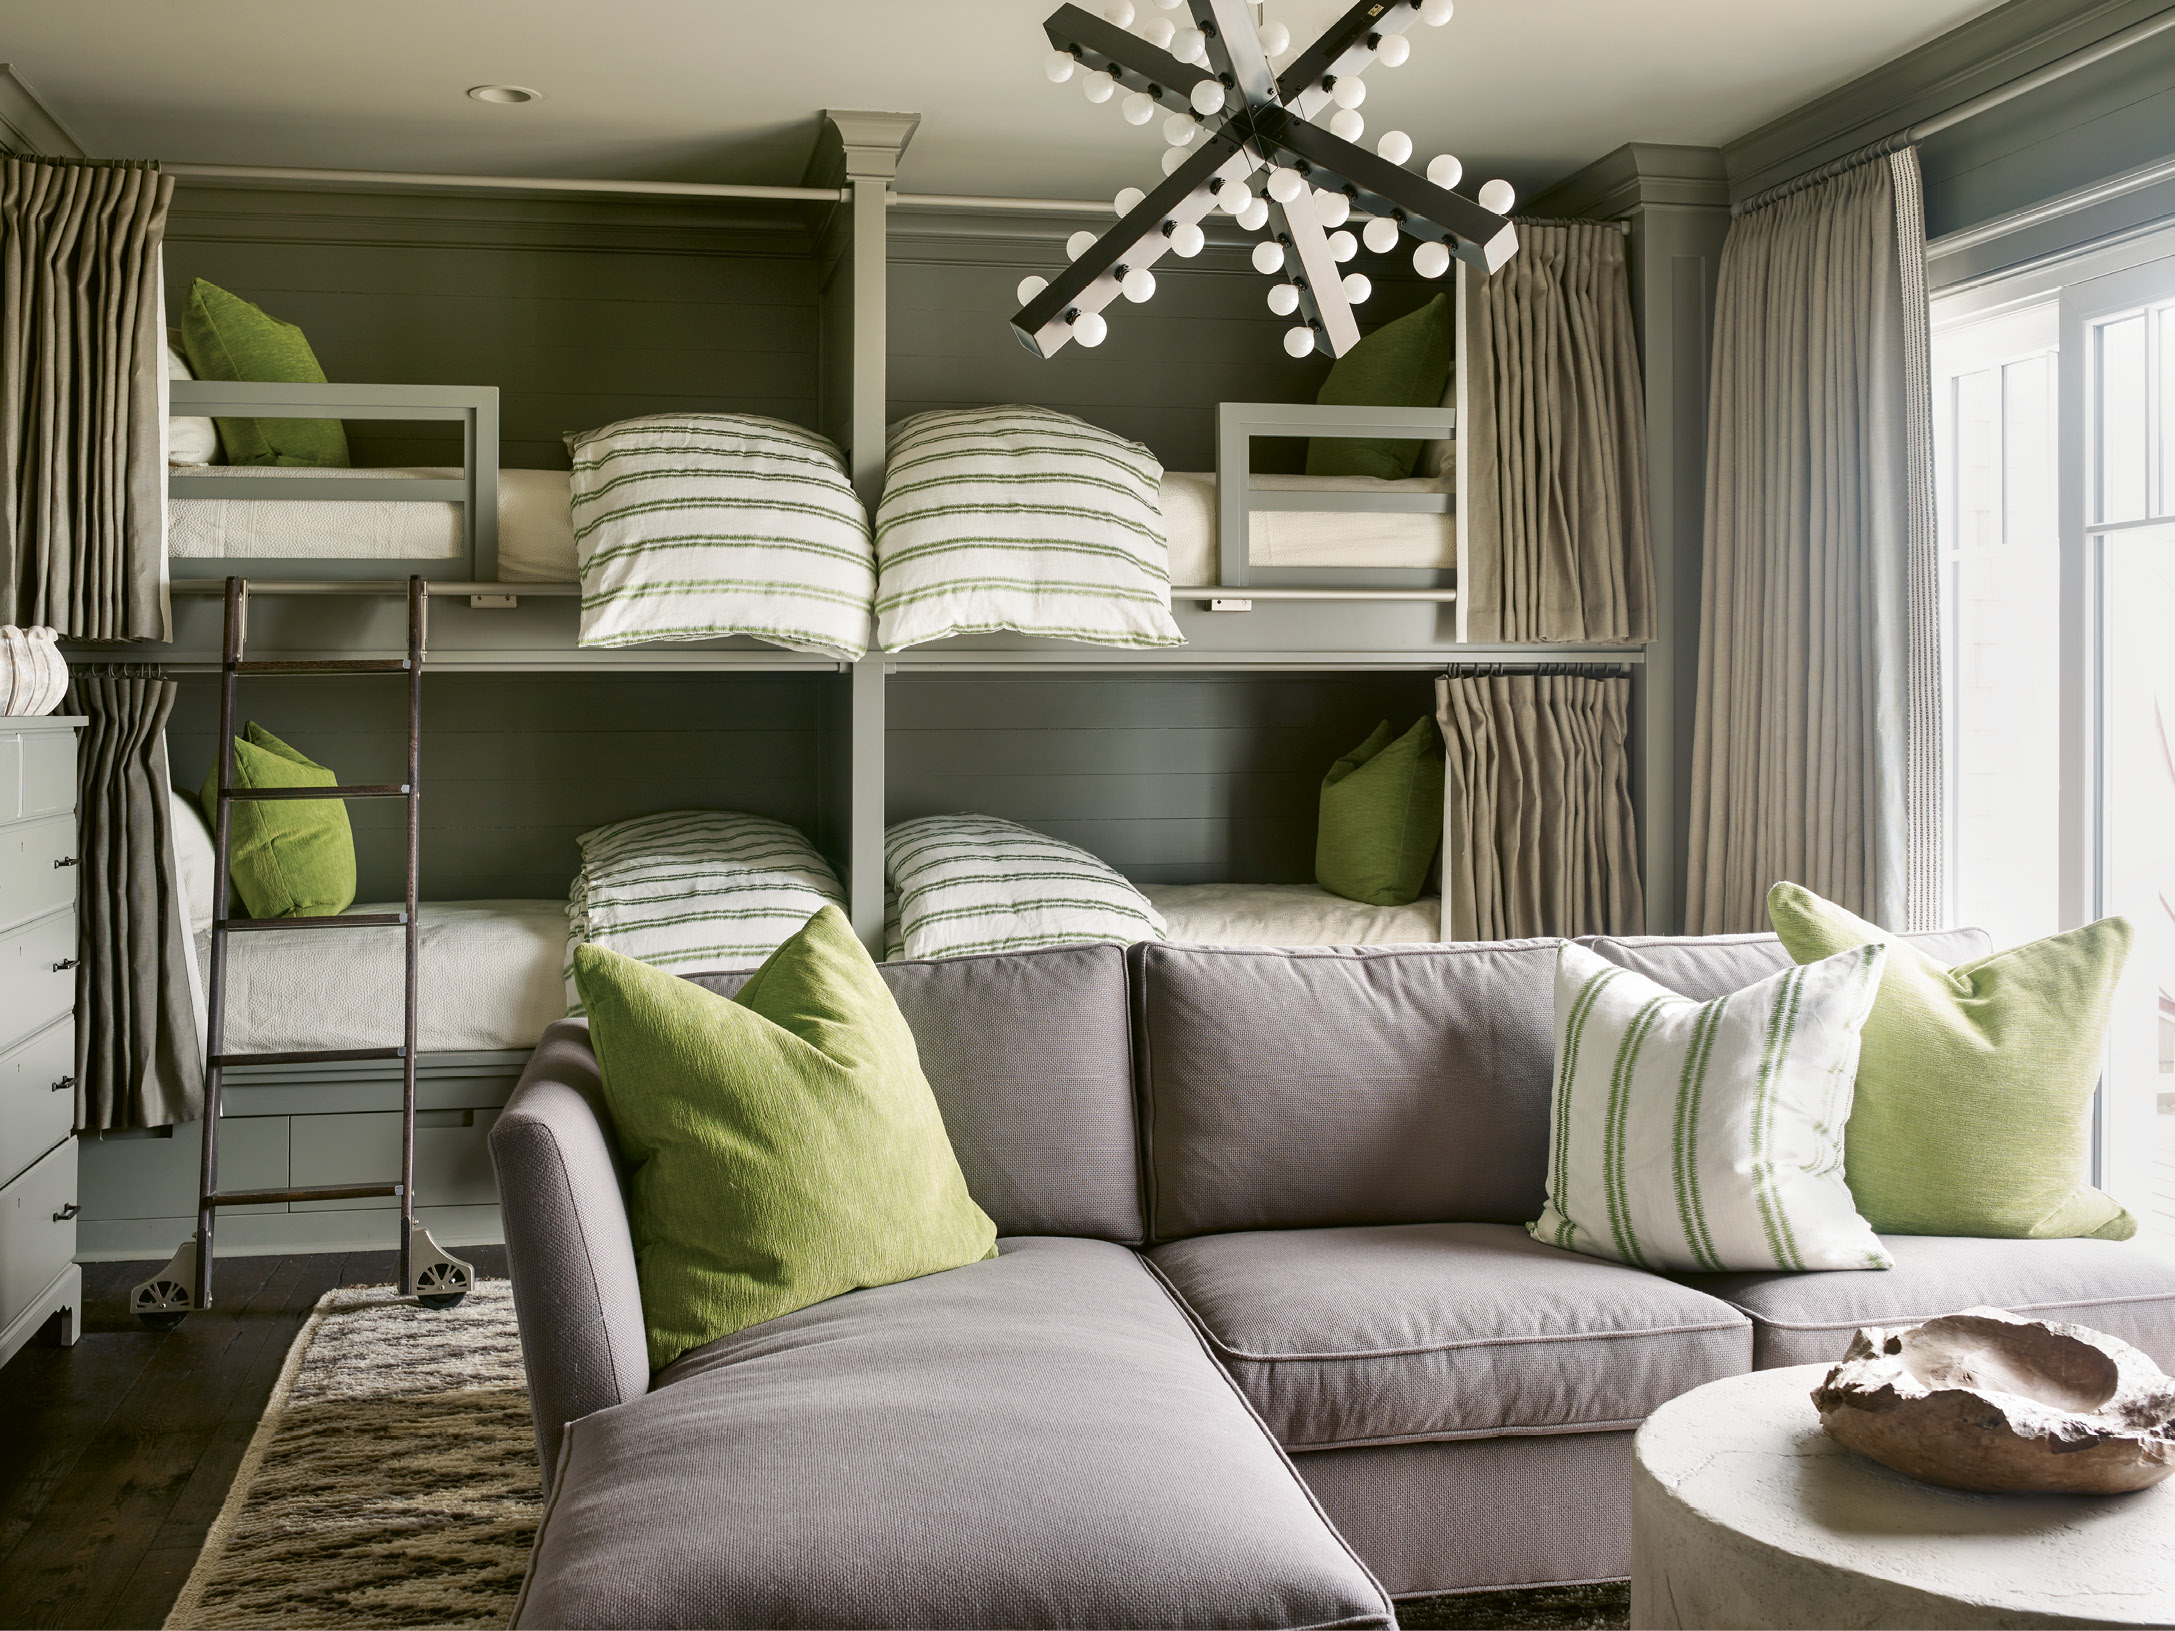 The bunk room's cool comforts include the slate grey walls, shag Moroccan carpet, and pops of lime green.